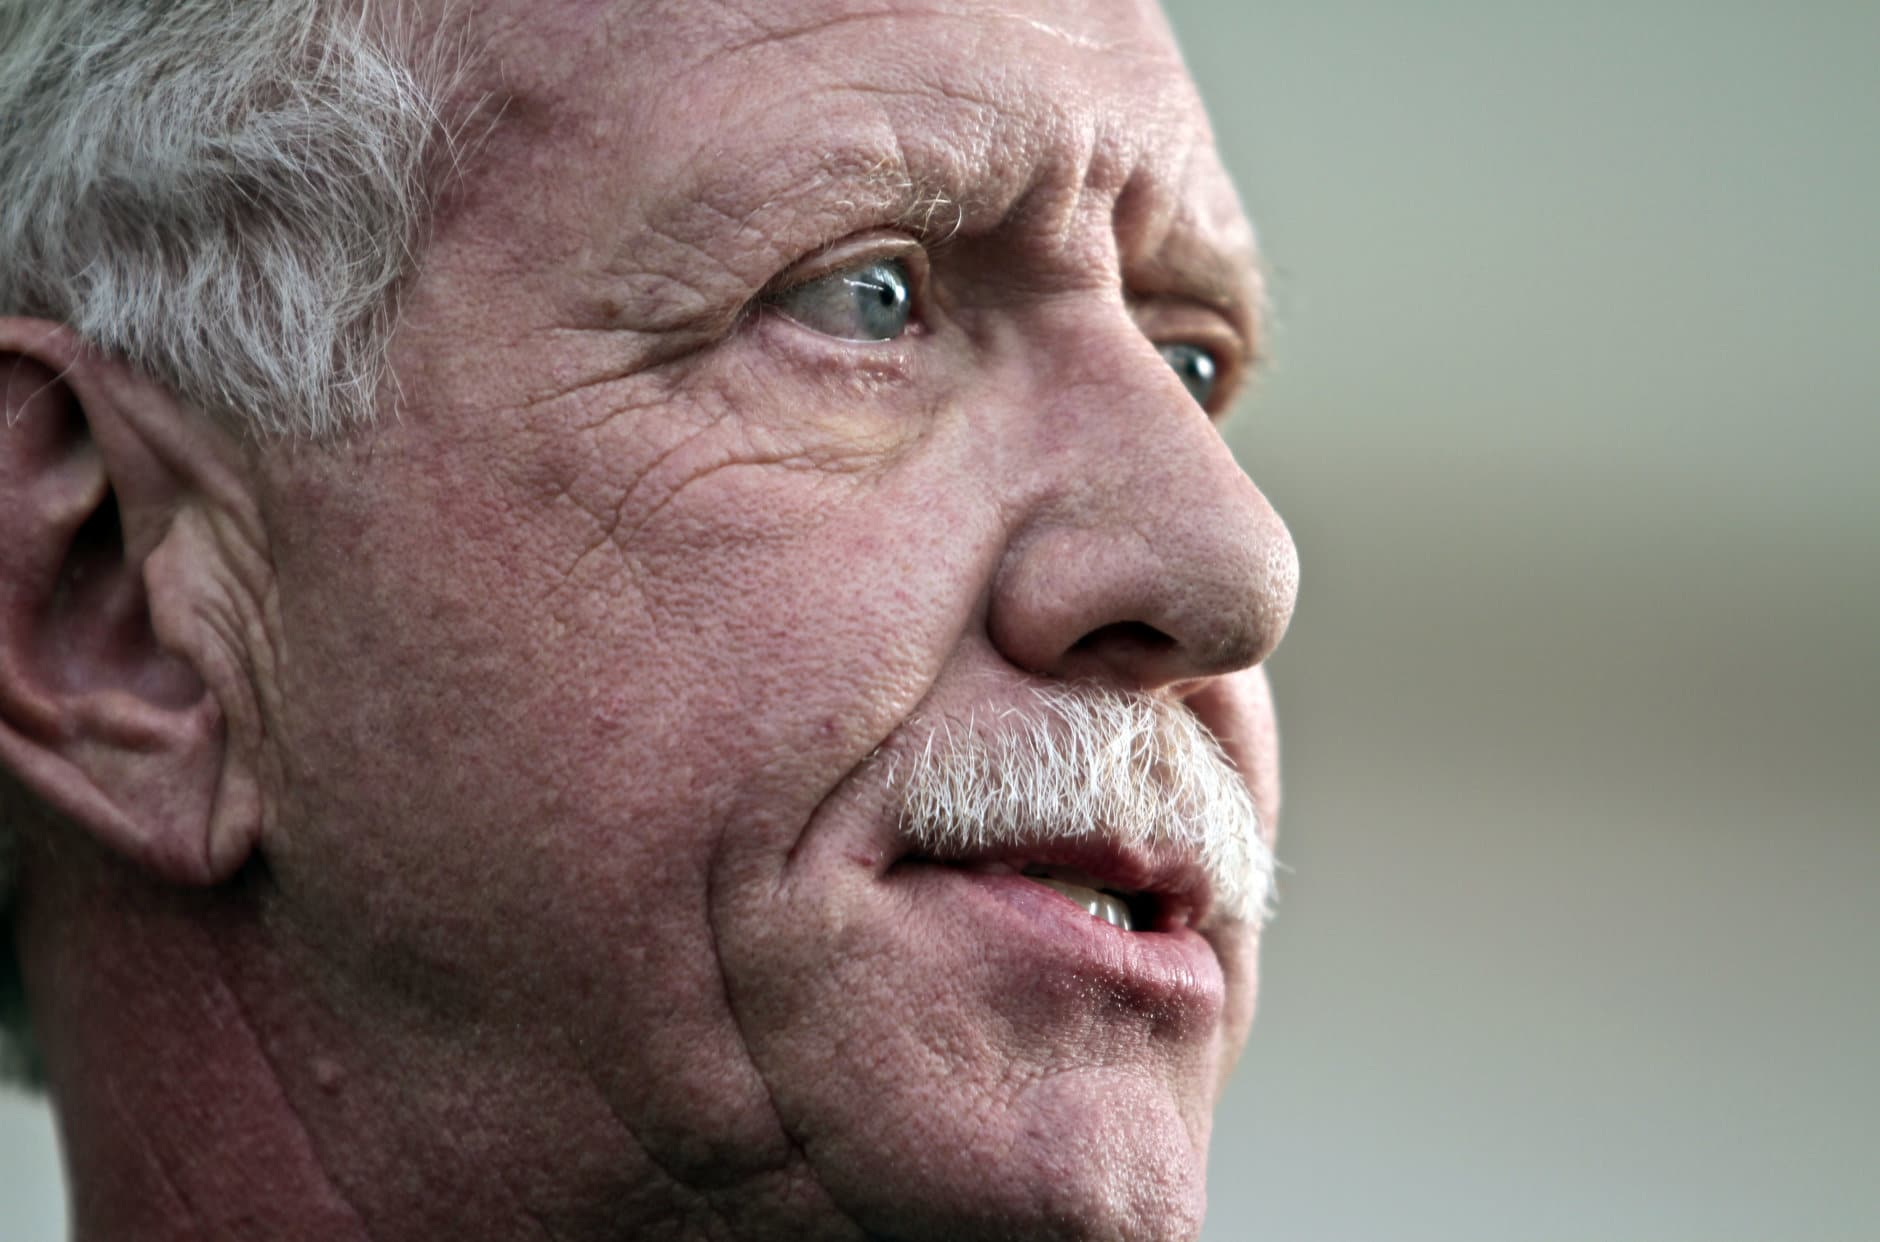 """Captain Chesley """"Sully"""" Sullenberger III, who safely piloted U.S. Airways Flight 1549 with155 passengers and crew to a water landing 5 years ago, speaks during a press conference on Wednesday, Jan. 15, 2014 in New York.  Sullenberger gathered with some survivors rescuers to mark the fifth anniversary of the event known as the """"miracle on the Hudson."""" (AP Photo/Bebeto Matthews)"""